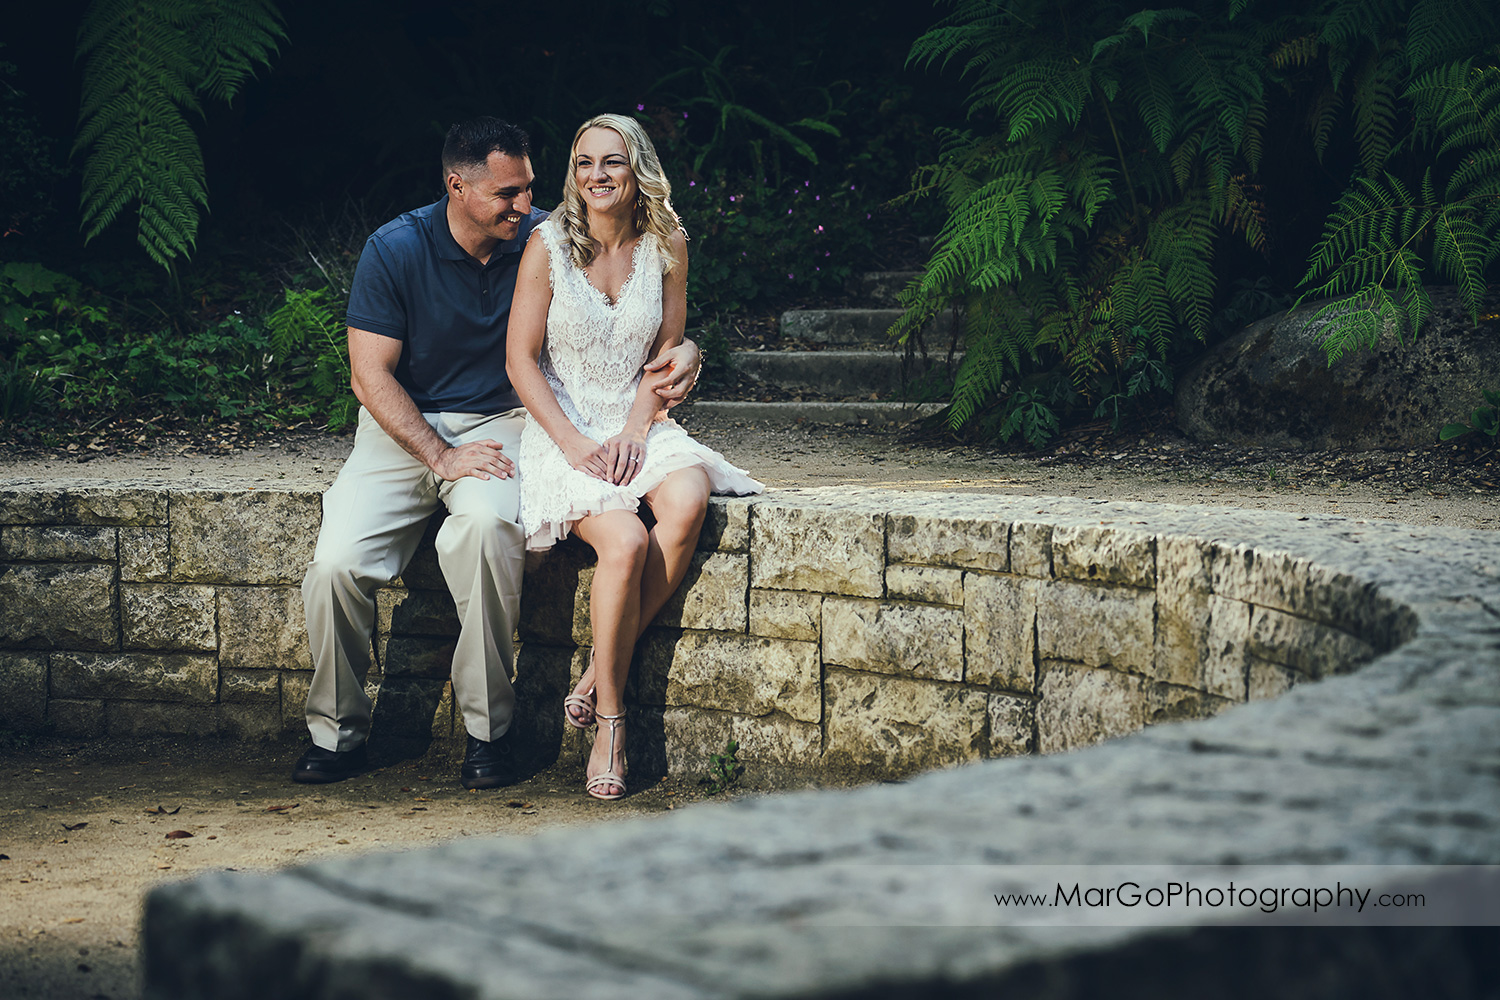 portrait of man in navy blue shirt and woman in white dress sitting on stone wall during engagement session at San Francisco Golden Gate Park